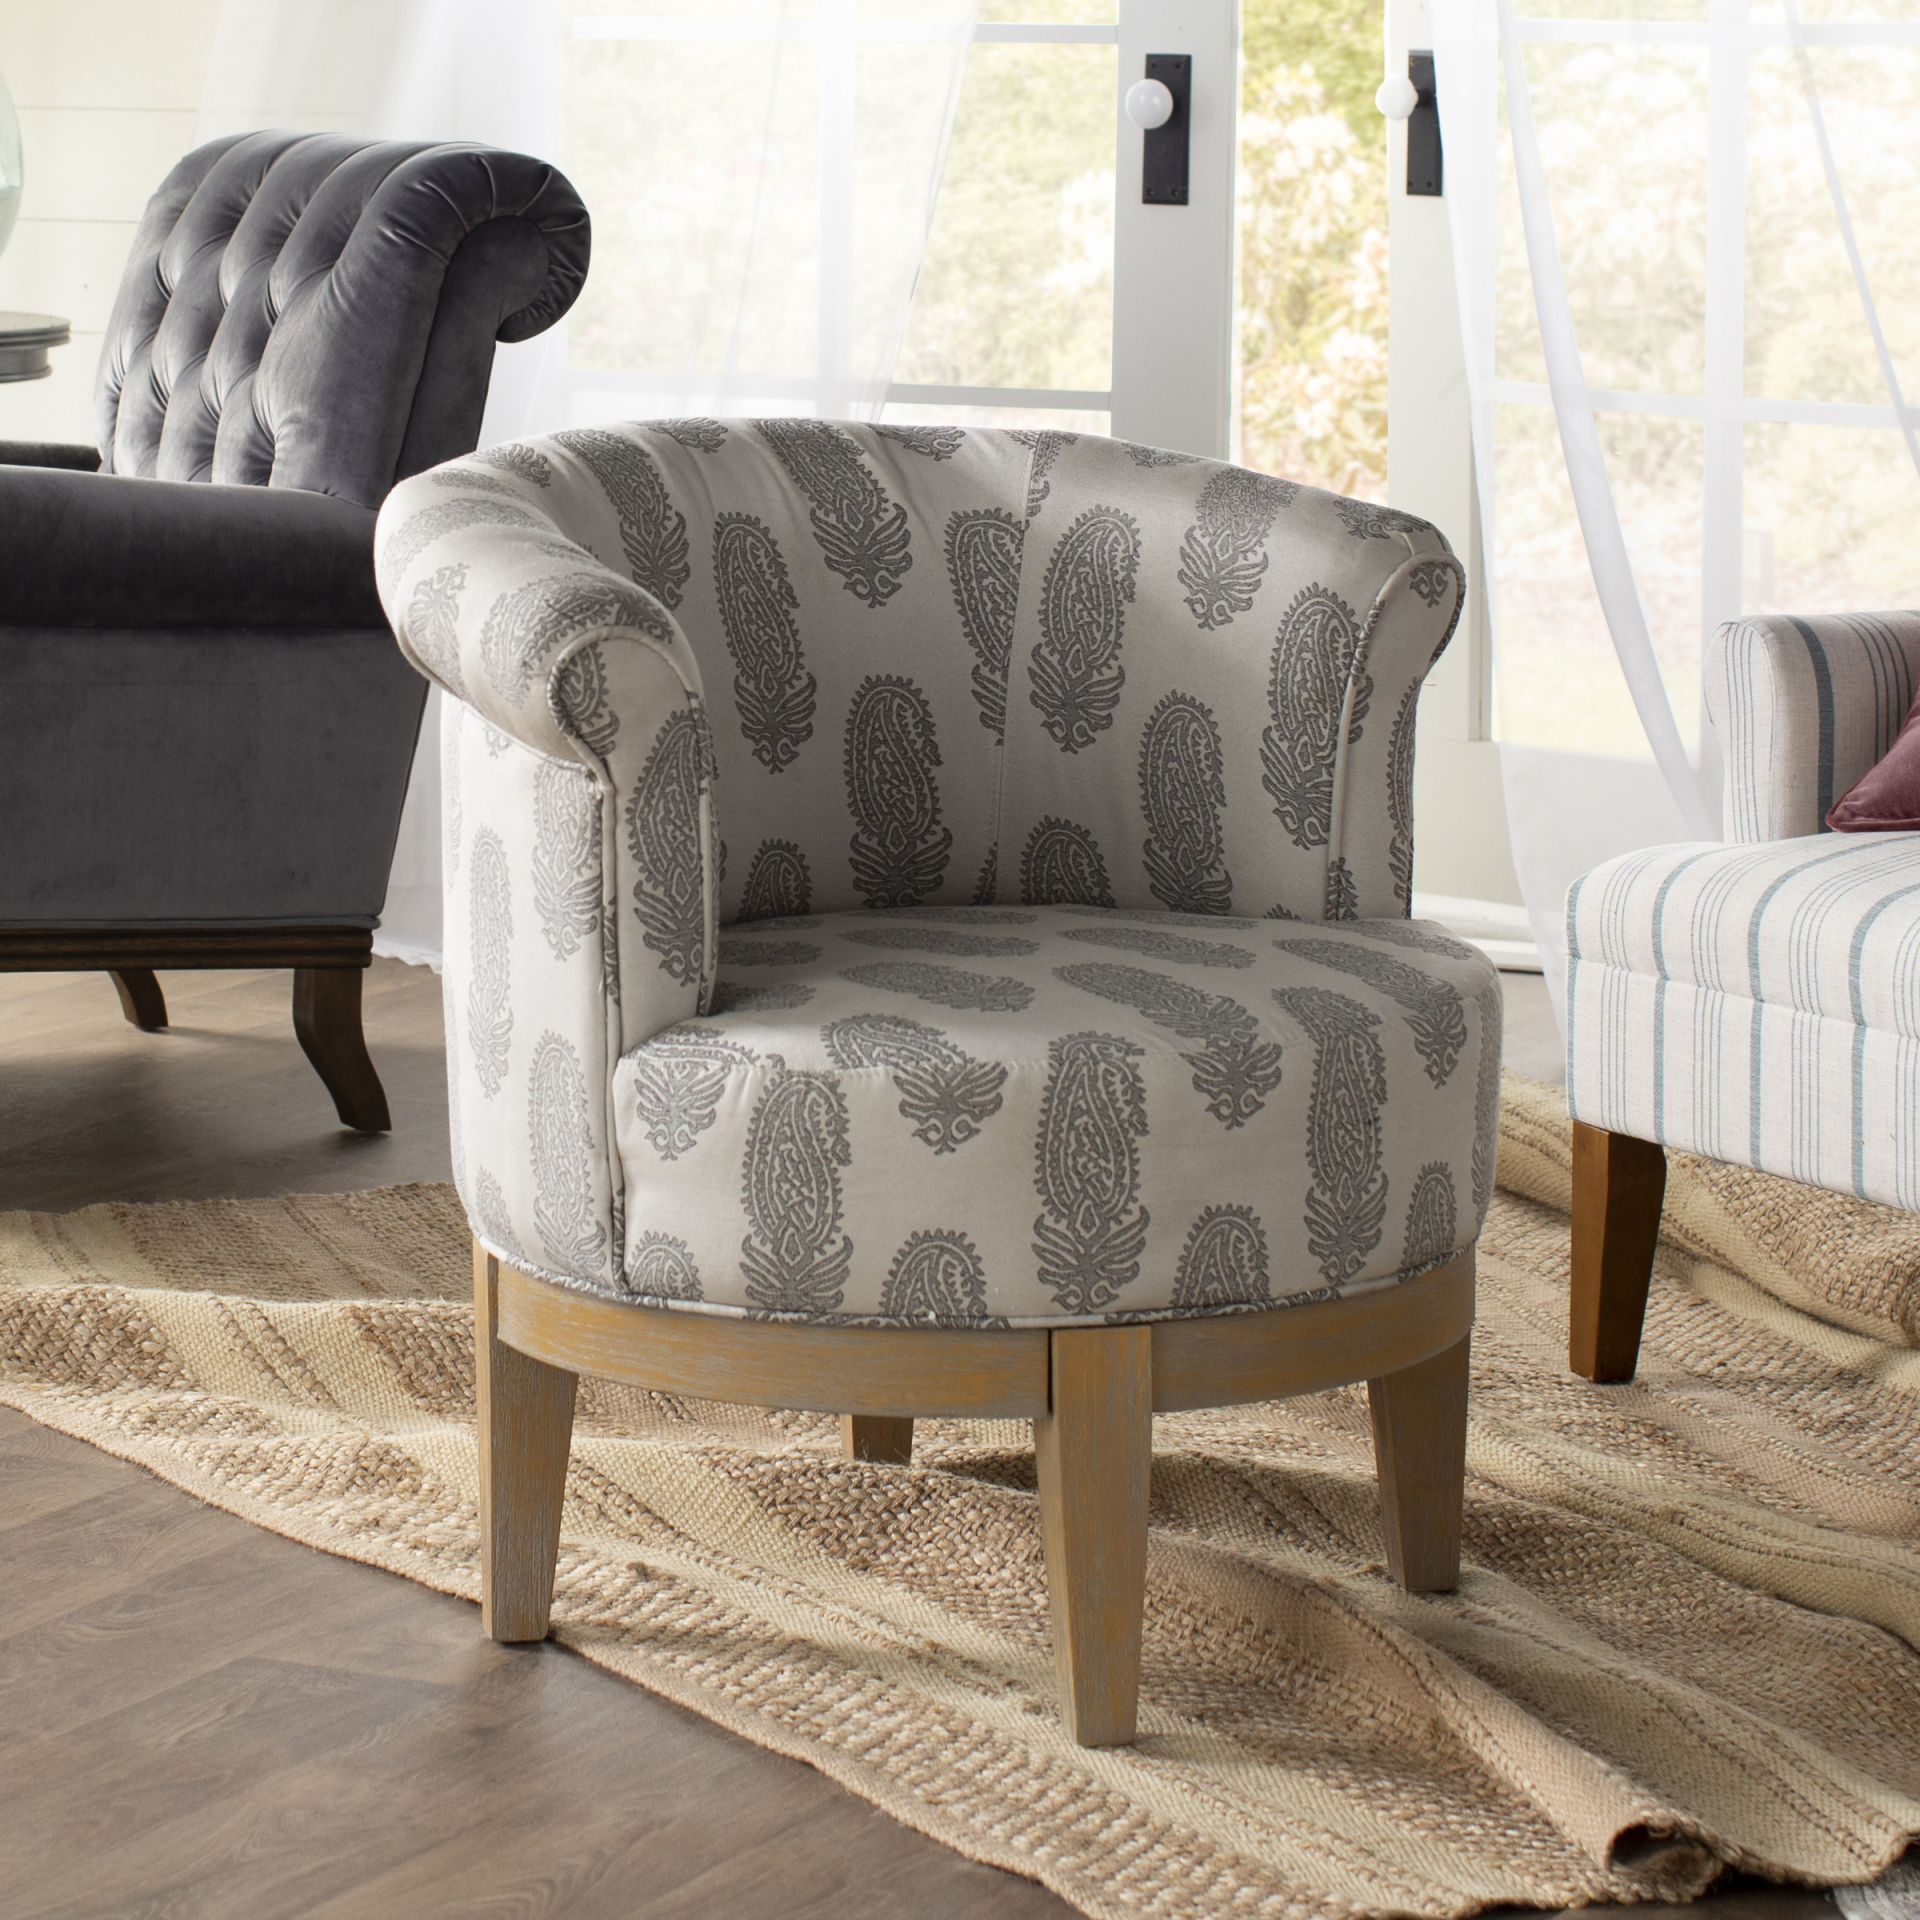 Living Room Furniture | Joss & Main with regard to Chair Living Room Furniture